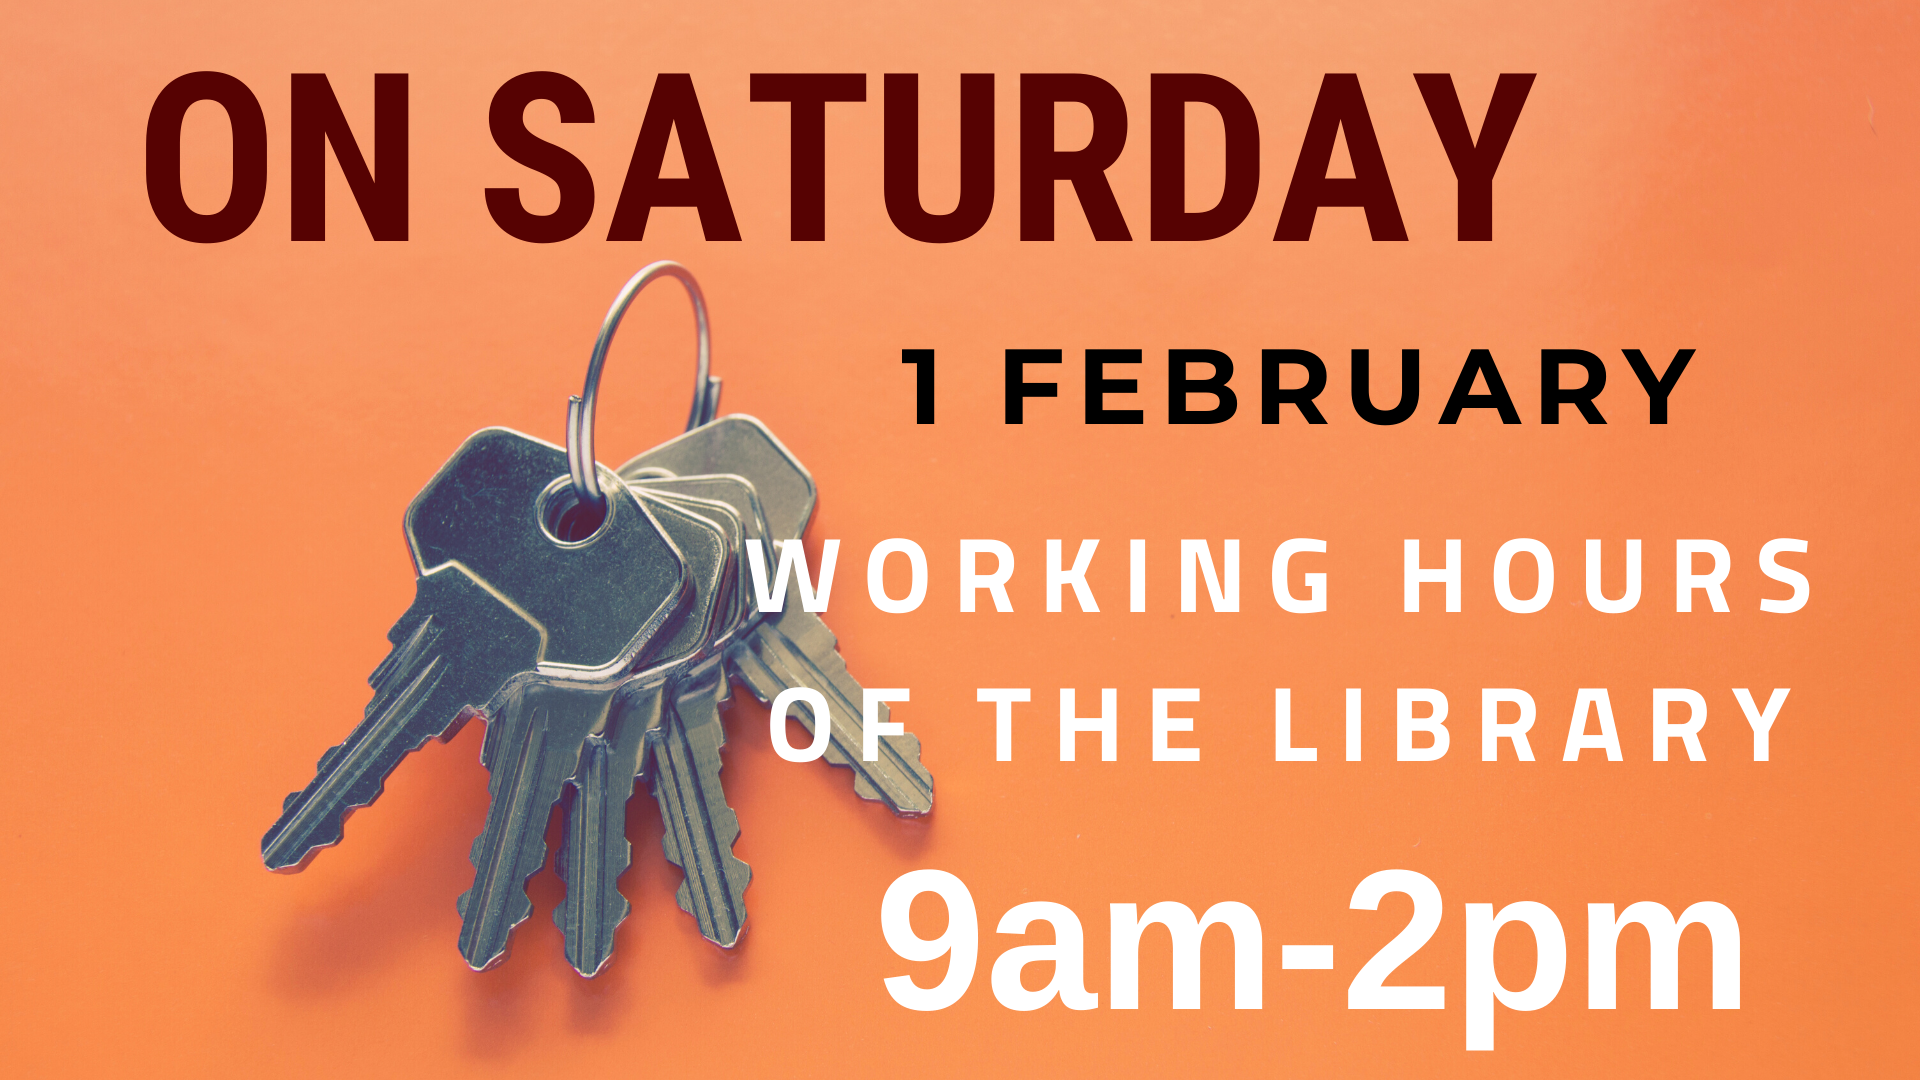 On Saturday 1 February our library is open from 9am until 2pm